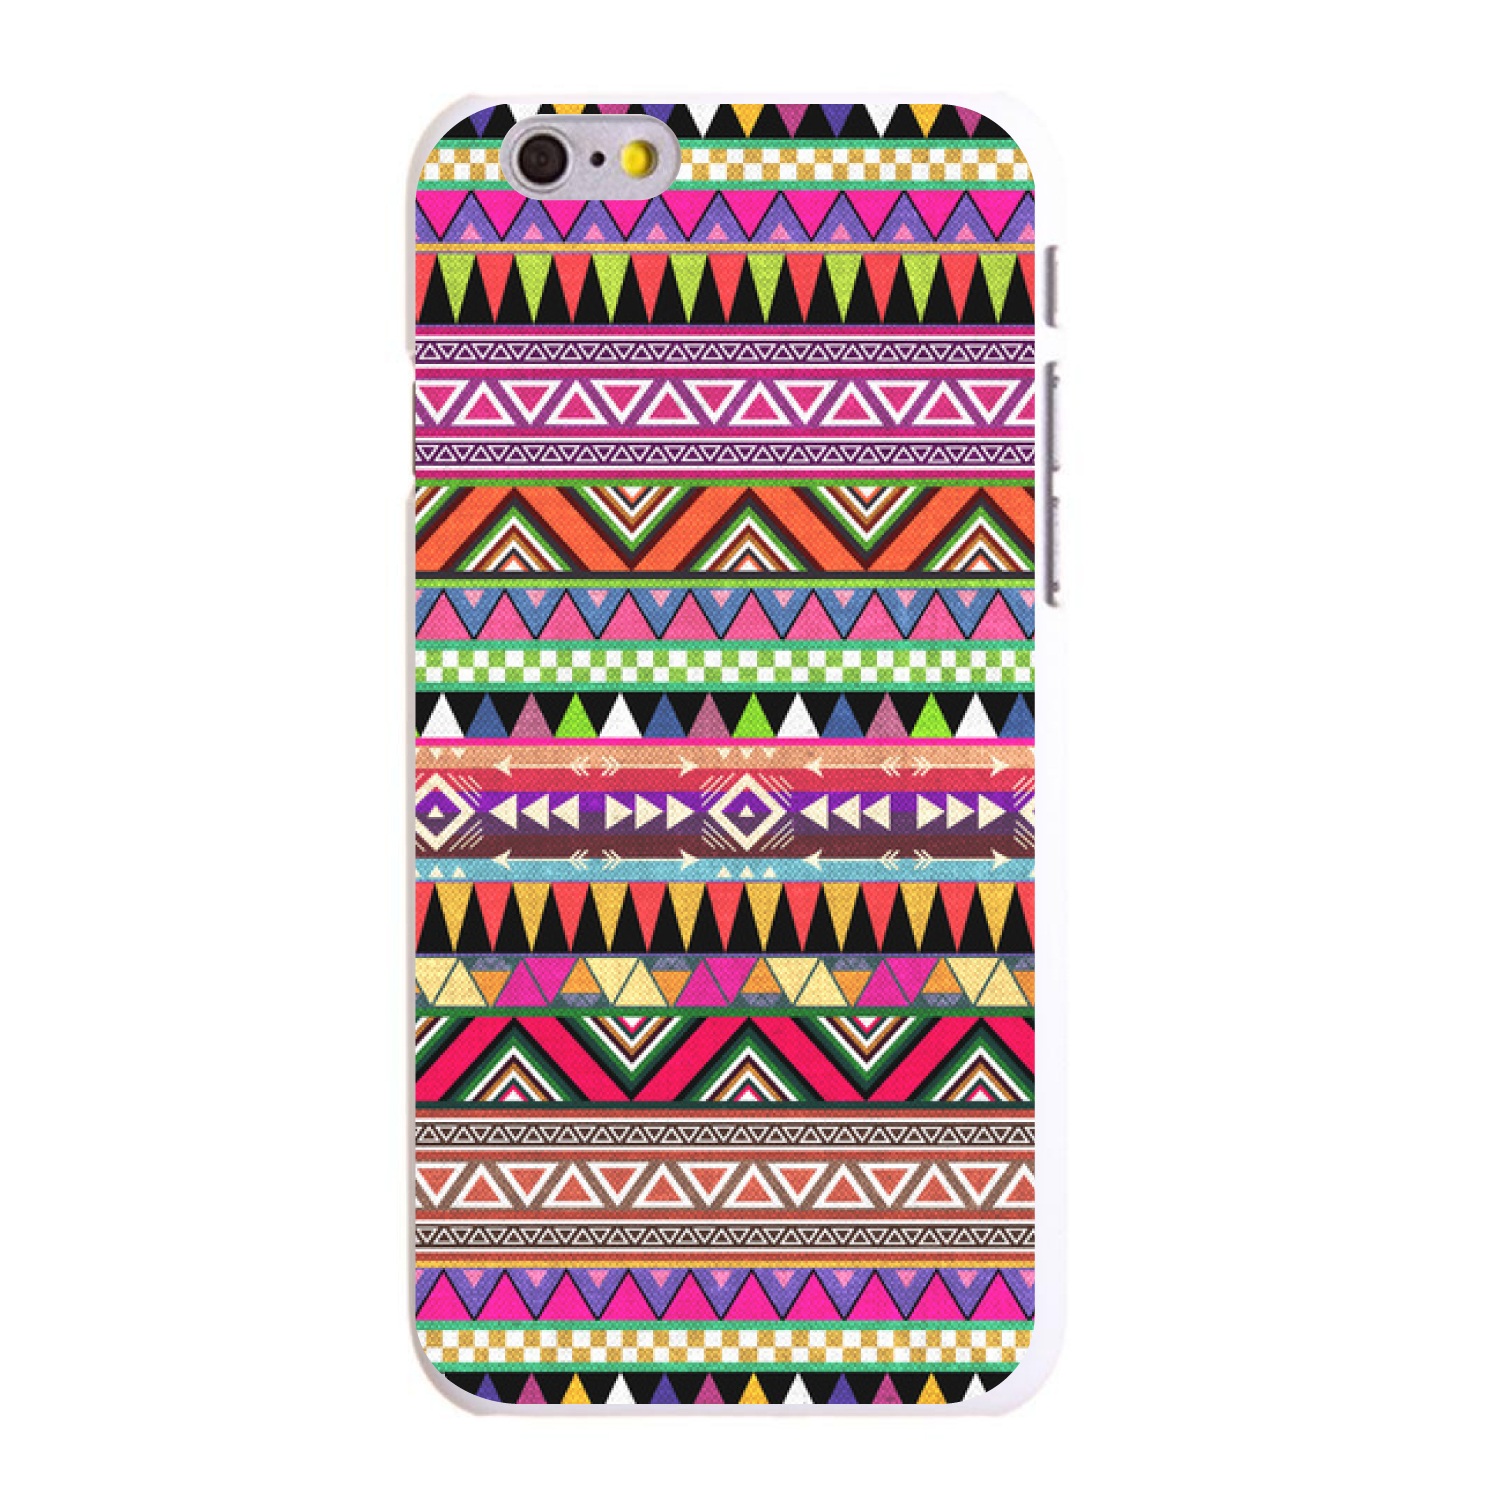 "CUSTOM White Hard Plastic Snap-On Case for Apple iPhone 6 PLUS / 6S PLUS (5.5"" Screen) - Pink Blue Orange Tribal Print"